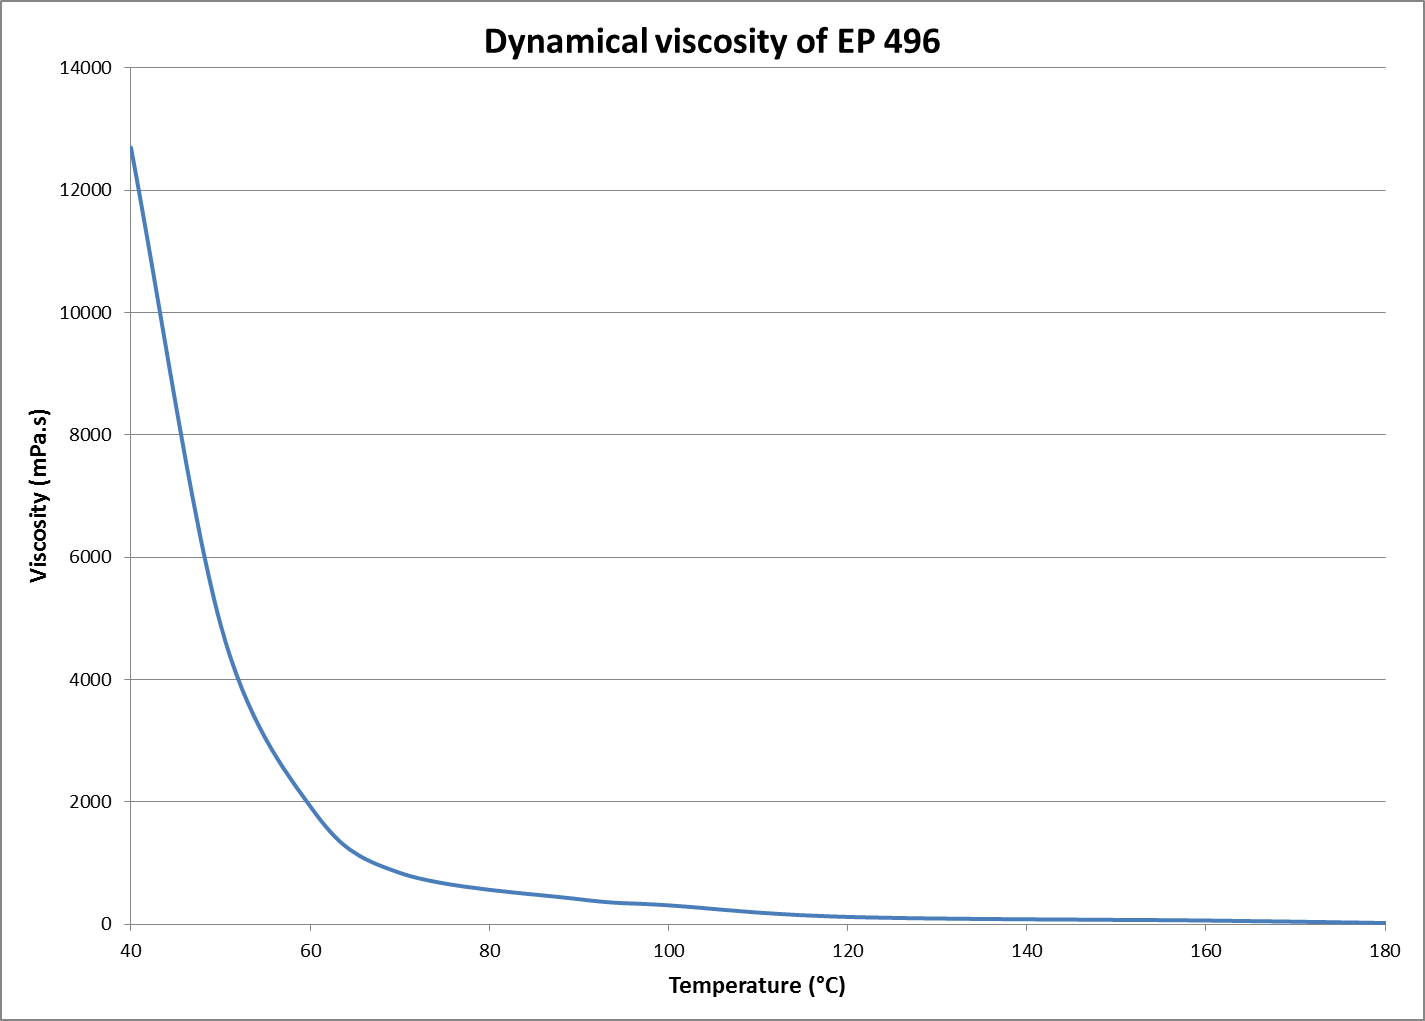 EPIKOTE™ Resin 496_dynamical viscosity